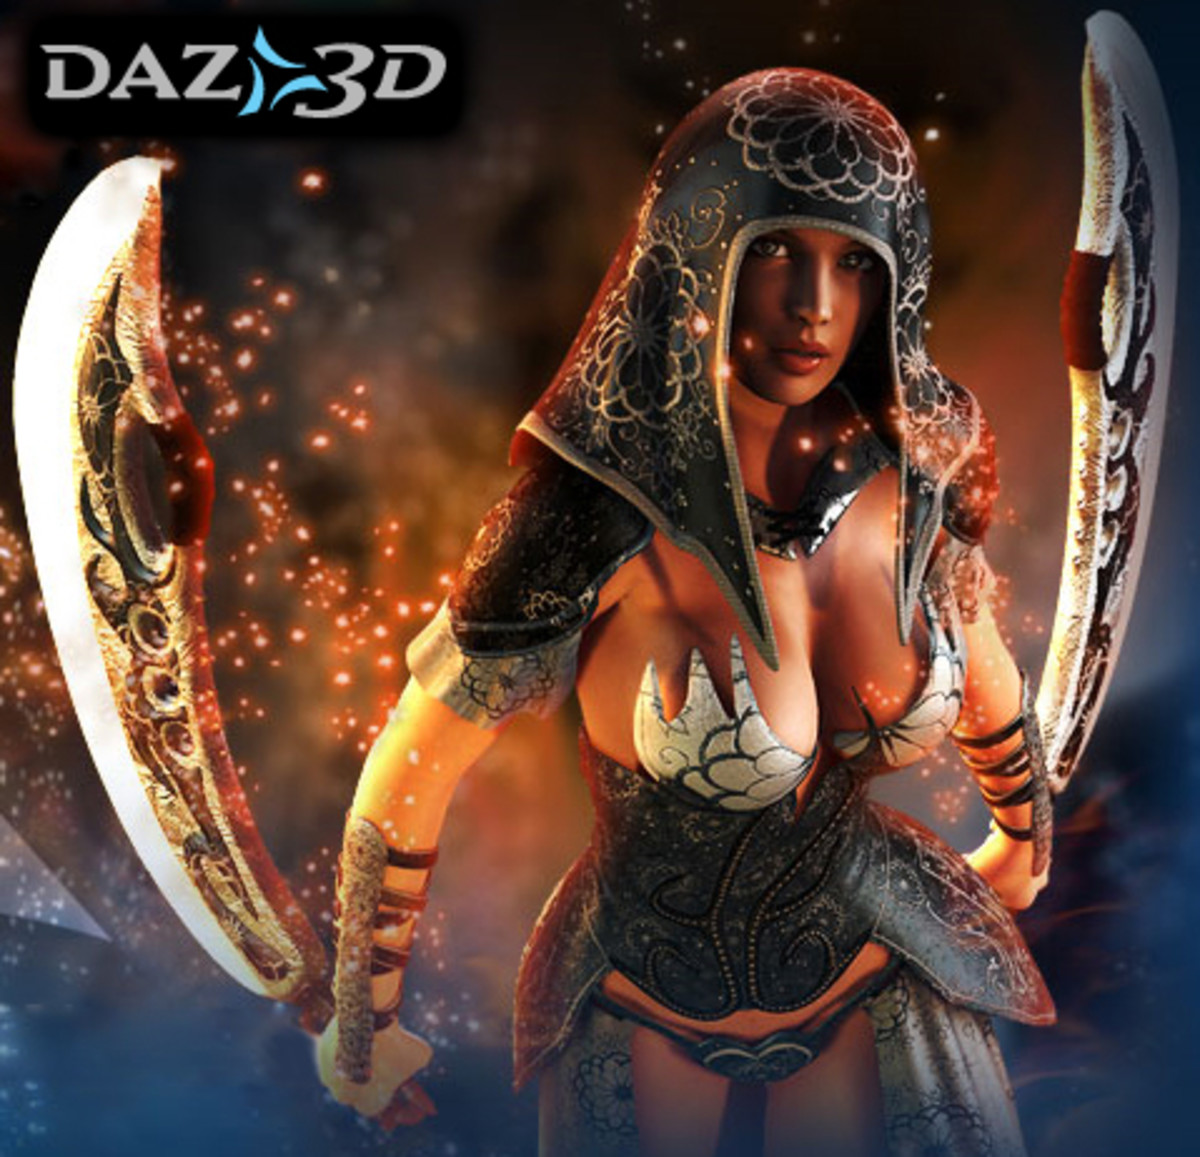 This tutorial was written using DAZ Studio 3, but many of the tool bars and options remain the same across multiple versions of the program.